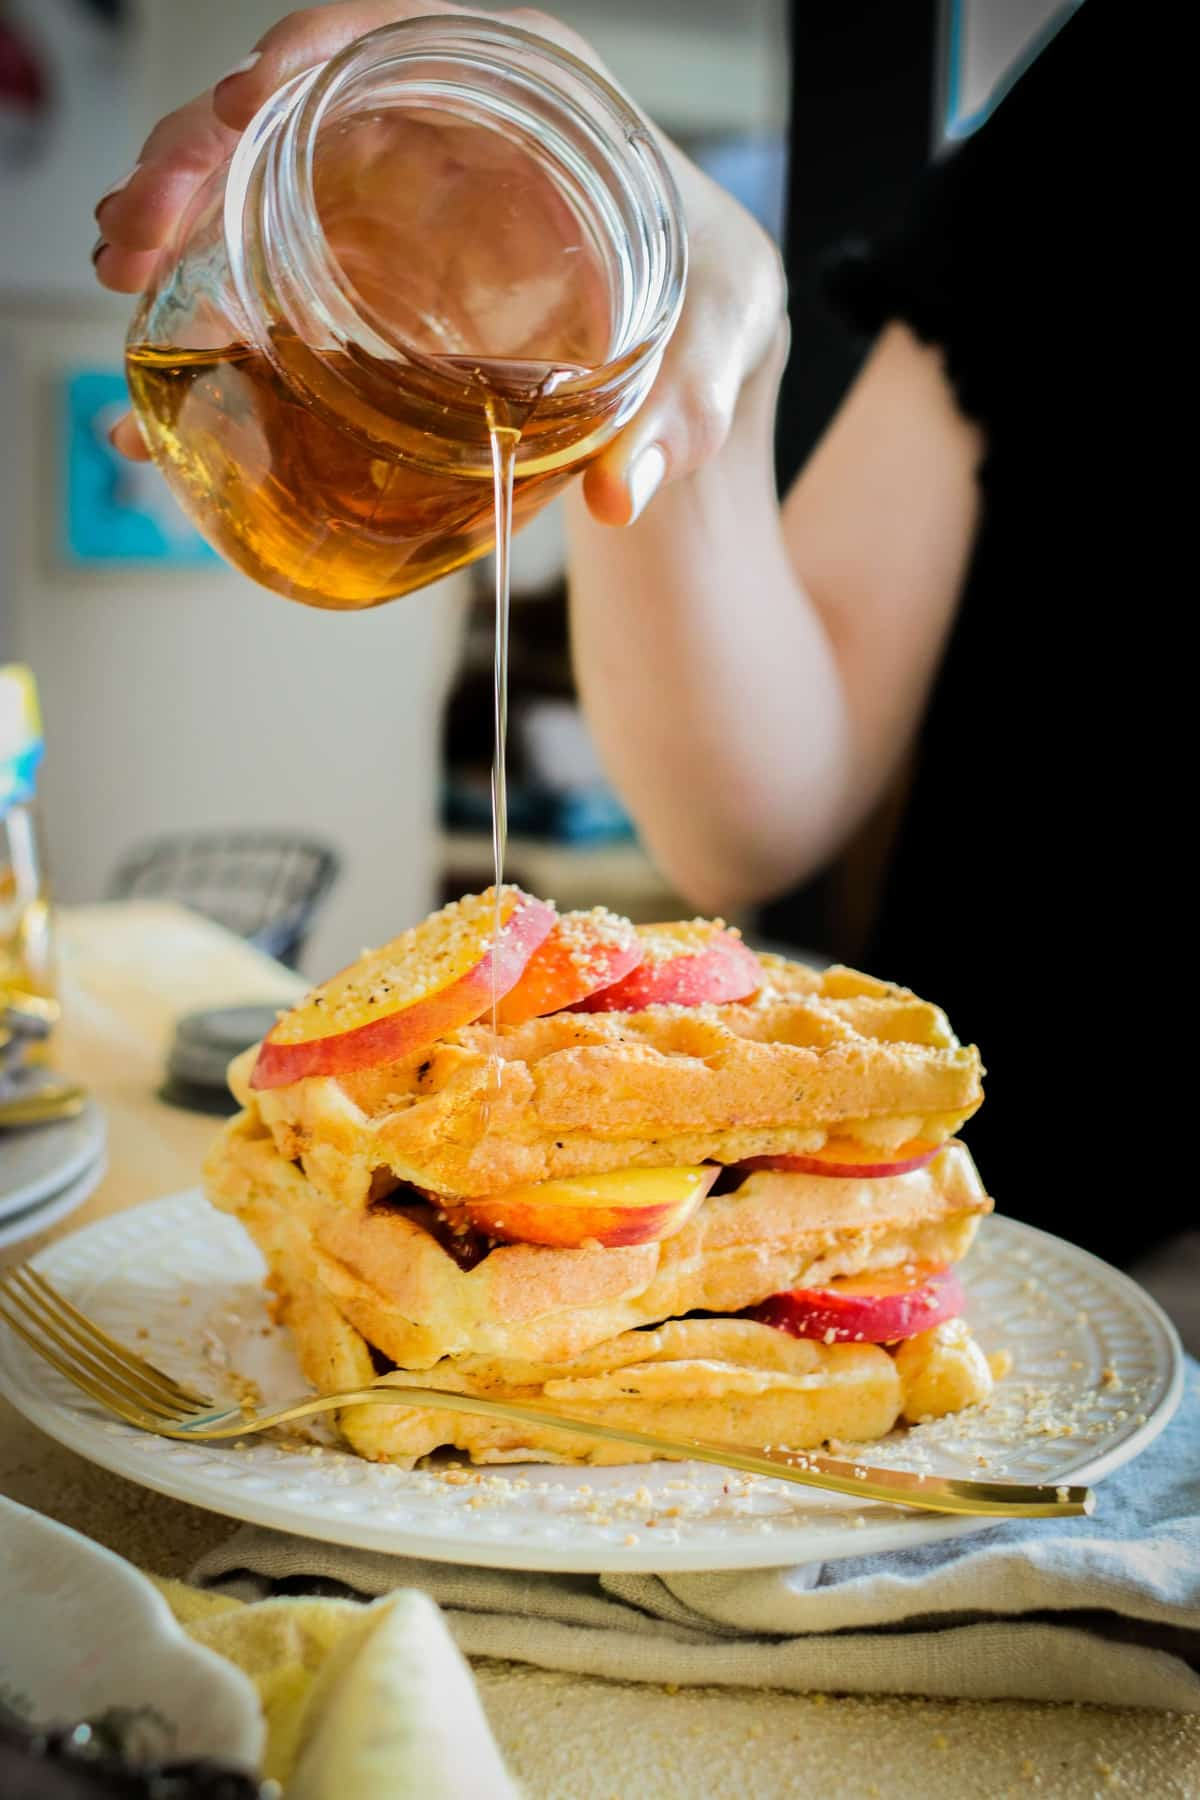 Stack of waffles with sliced peaches being drizzled with maple syrup